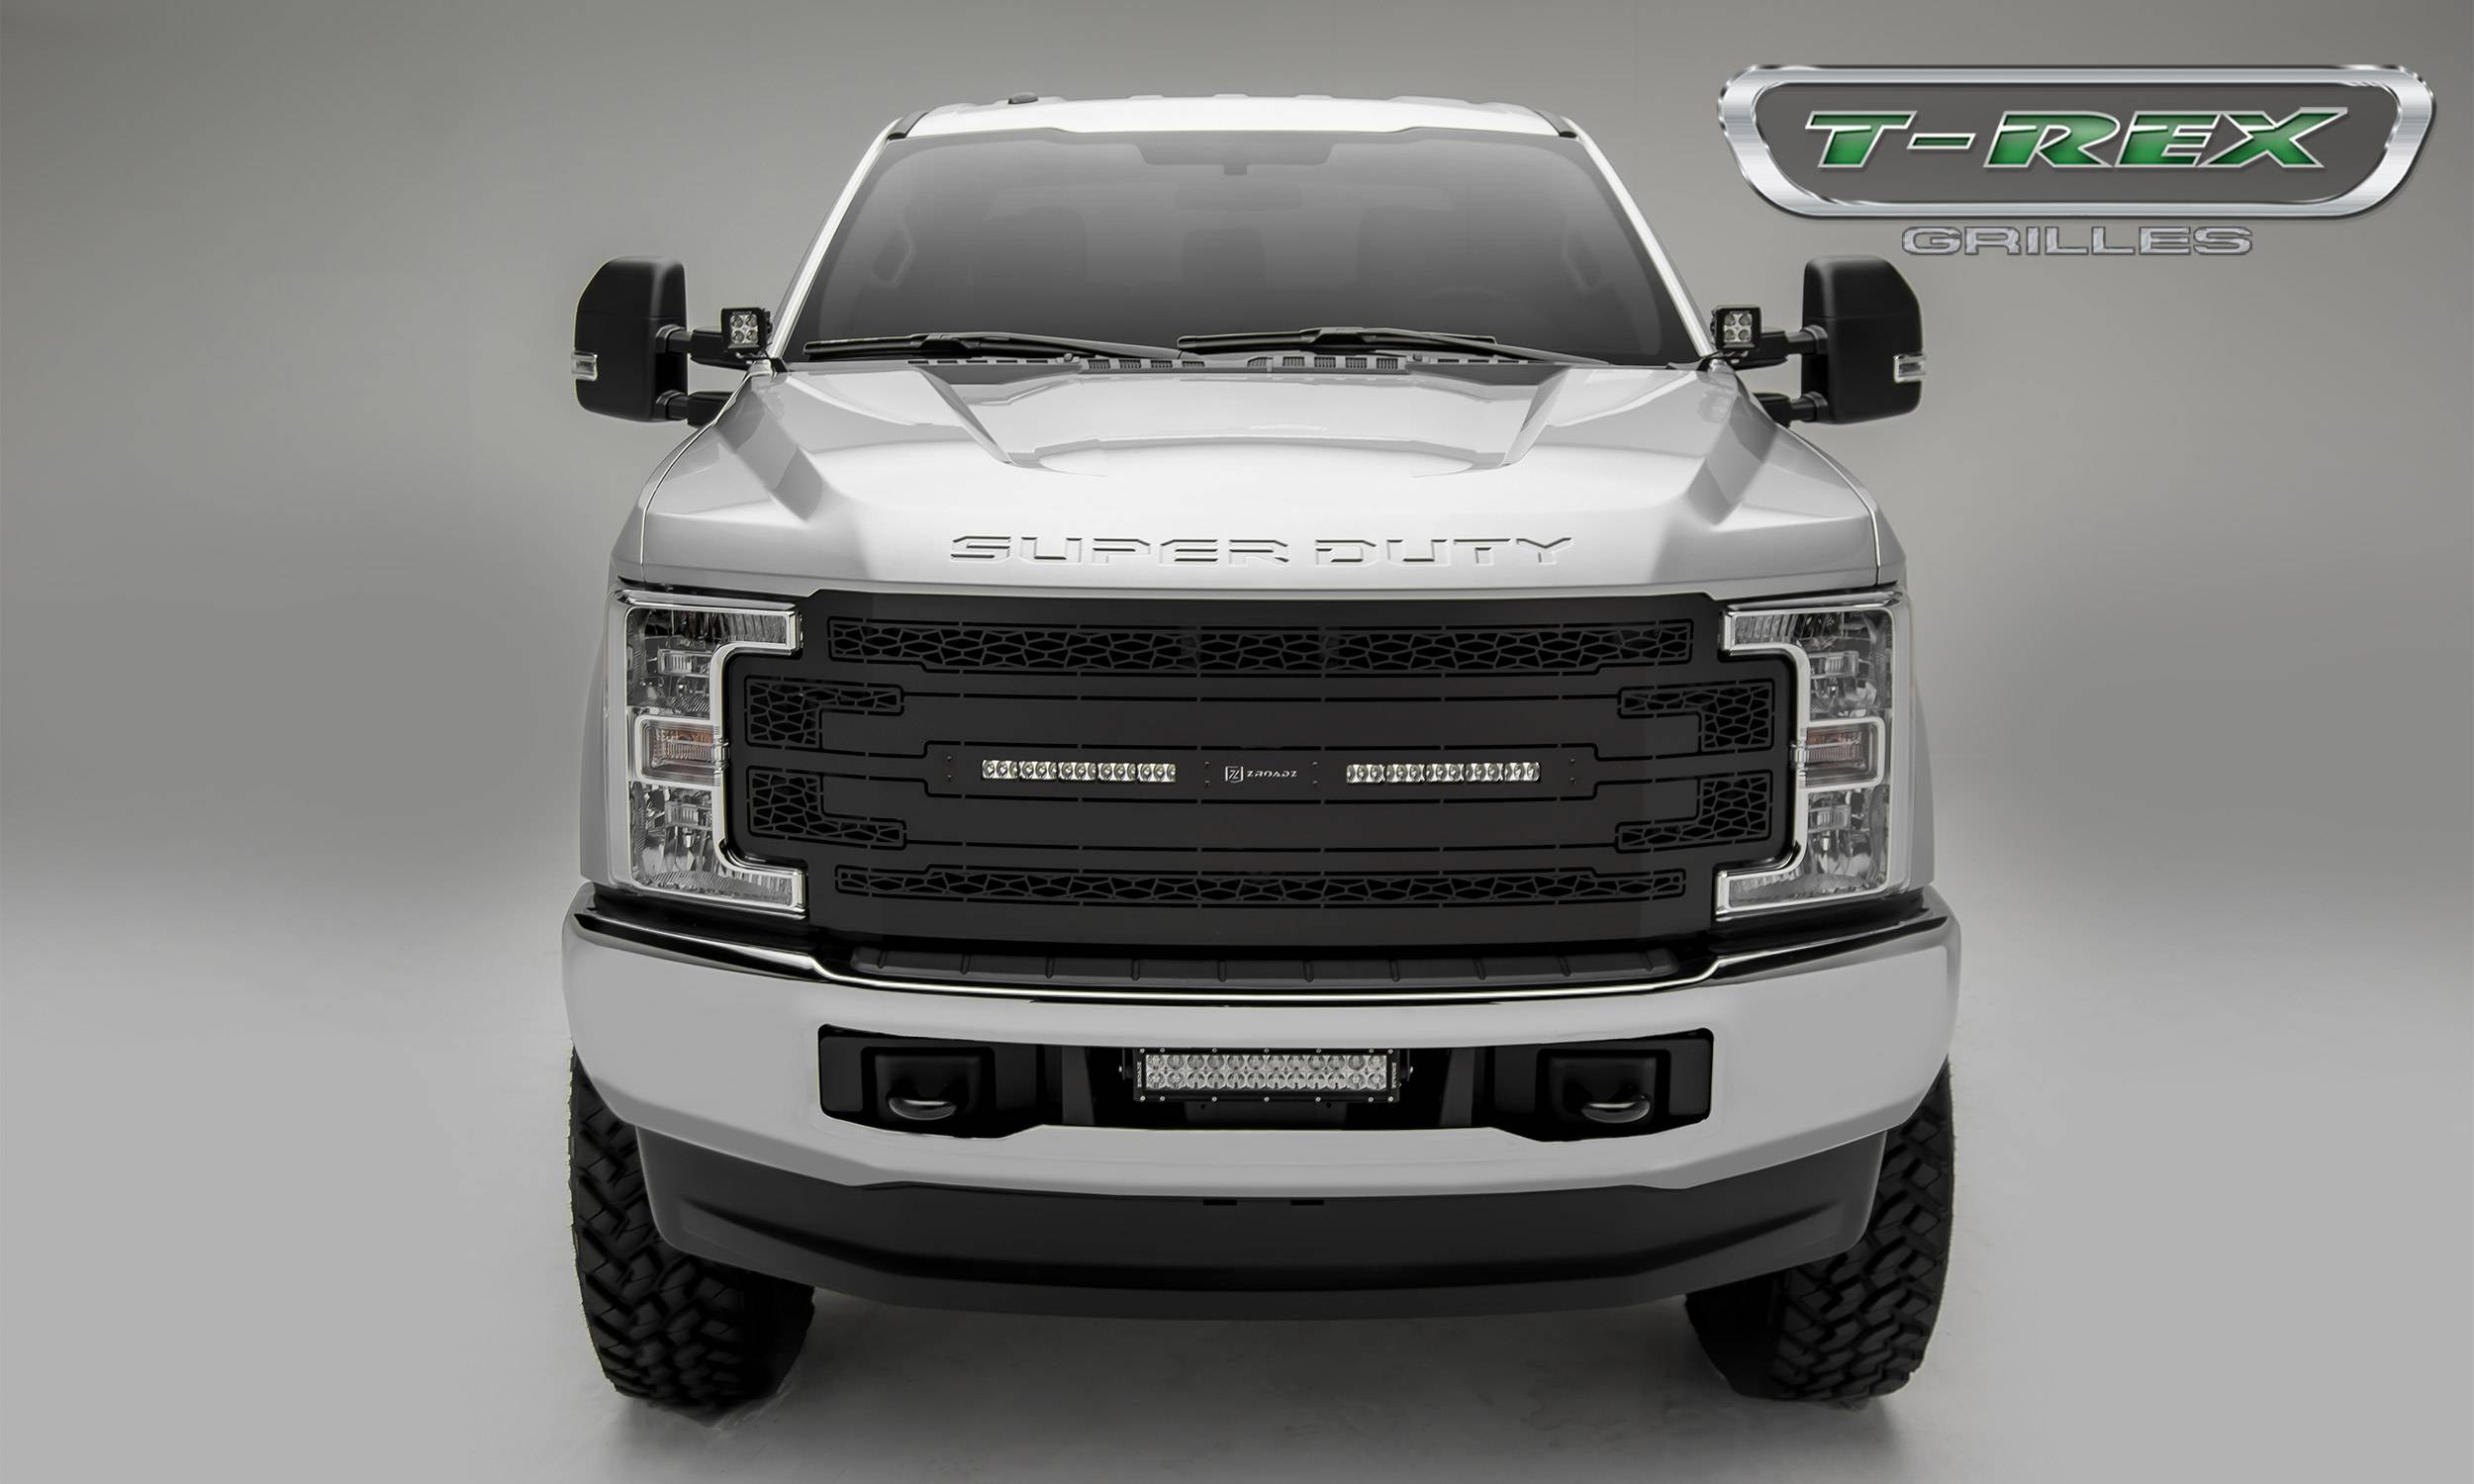 T rex ford f 250 f 350 super duty zroadz series main replacement grille 2 10 slim line single row led light bars zroadz laser cut pattern with